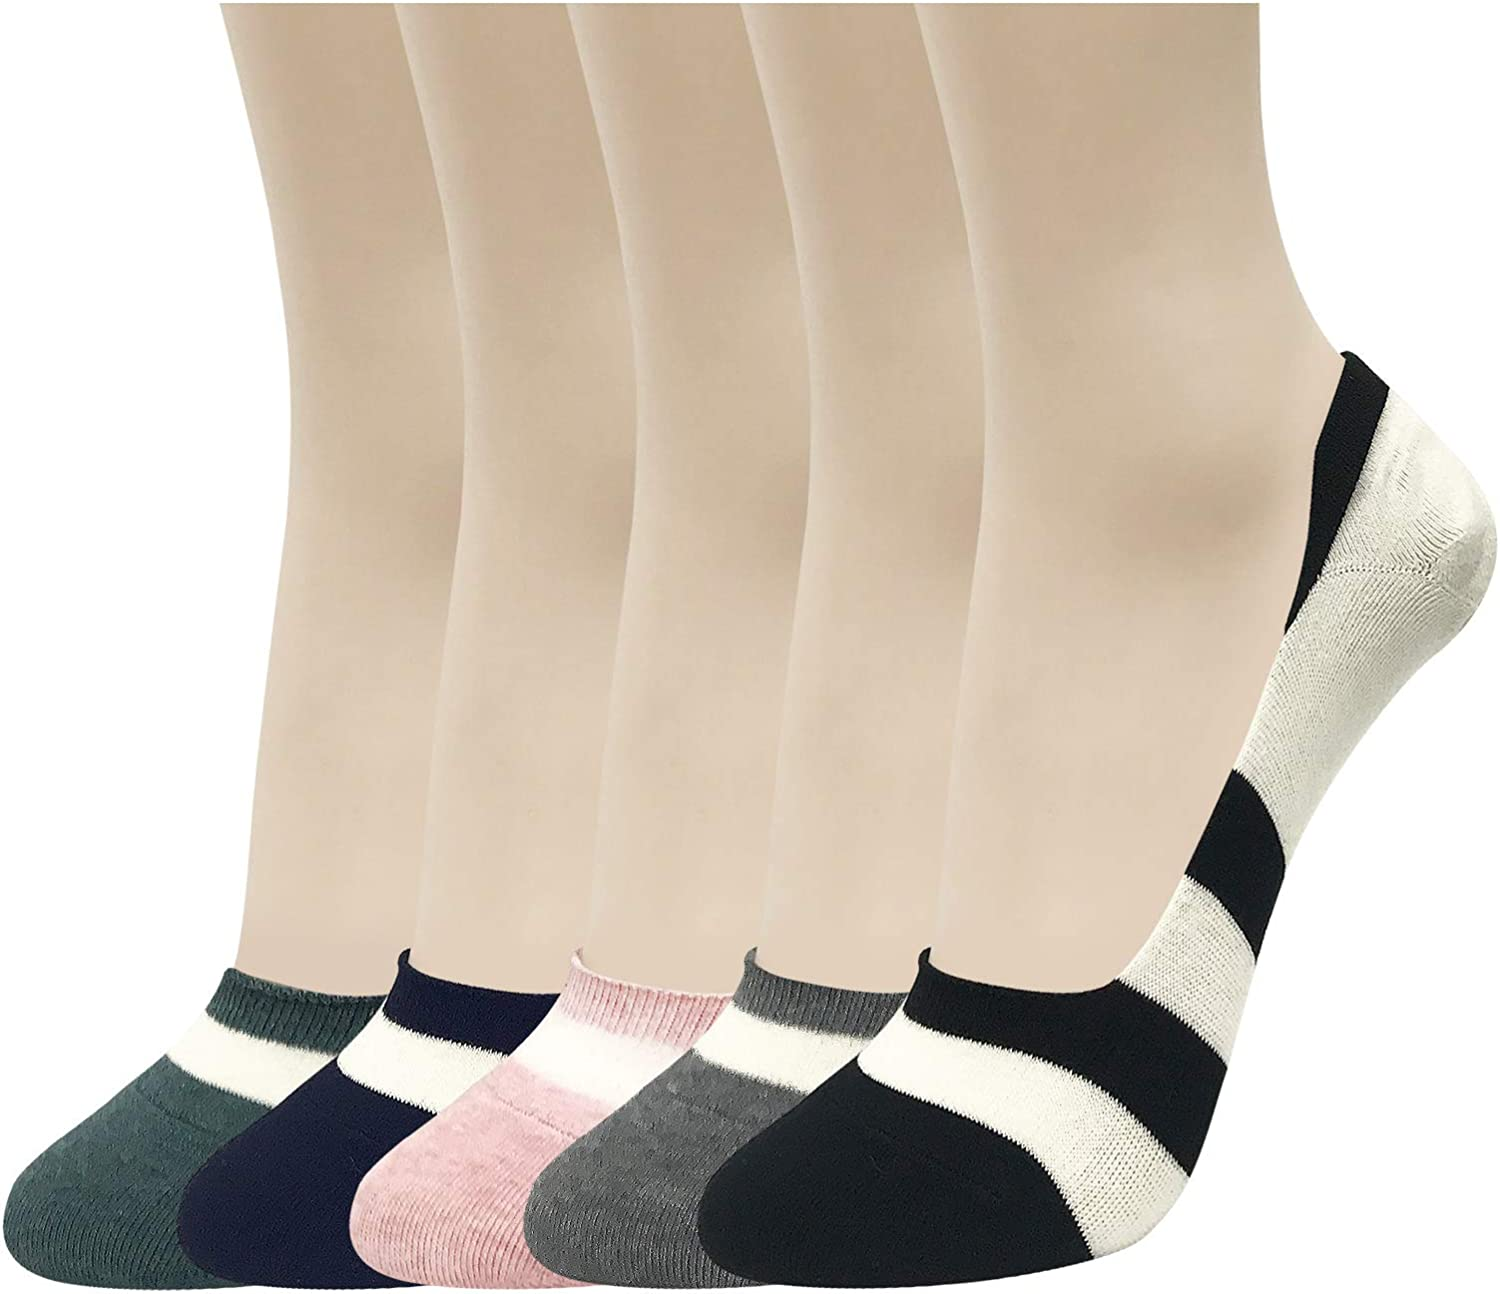 CUTIE MANGO Women's Casual Striped Non Slip Low Cut No Show Socks Liners 5 Soft Colors / 3 to 10 Pairs